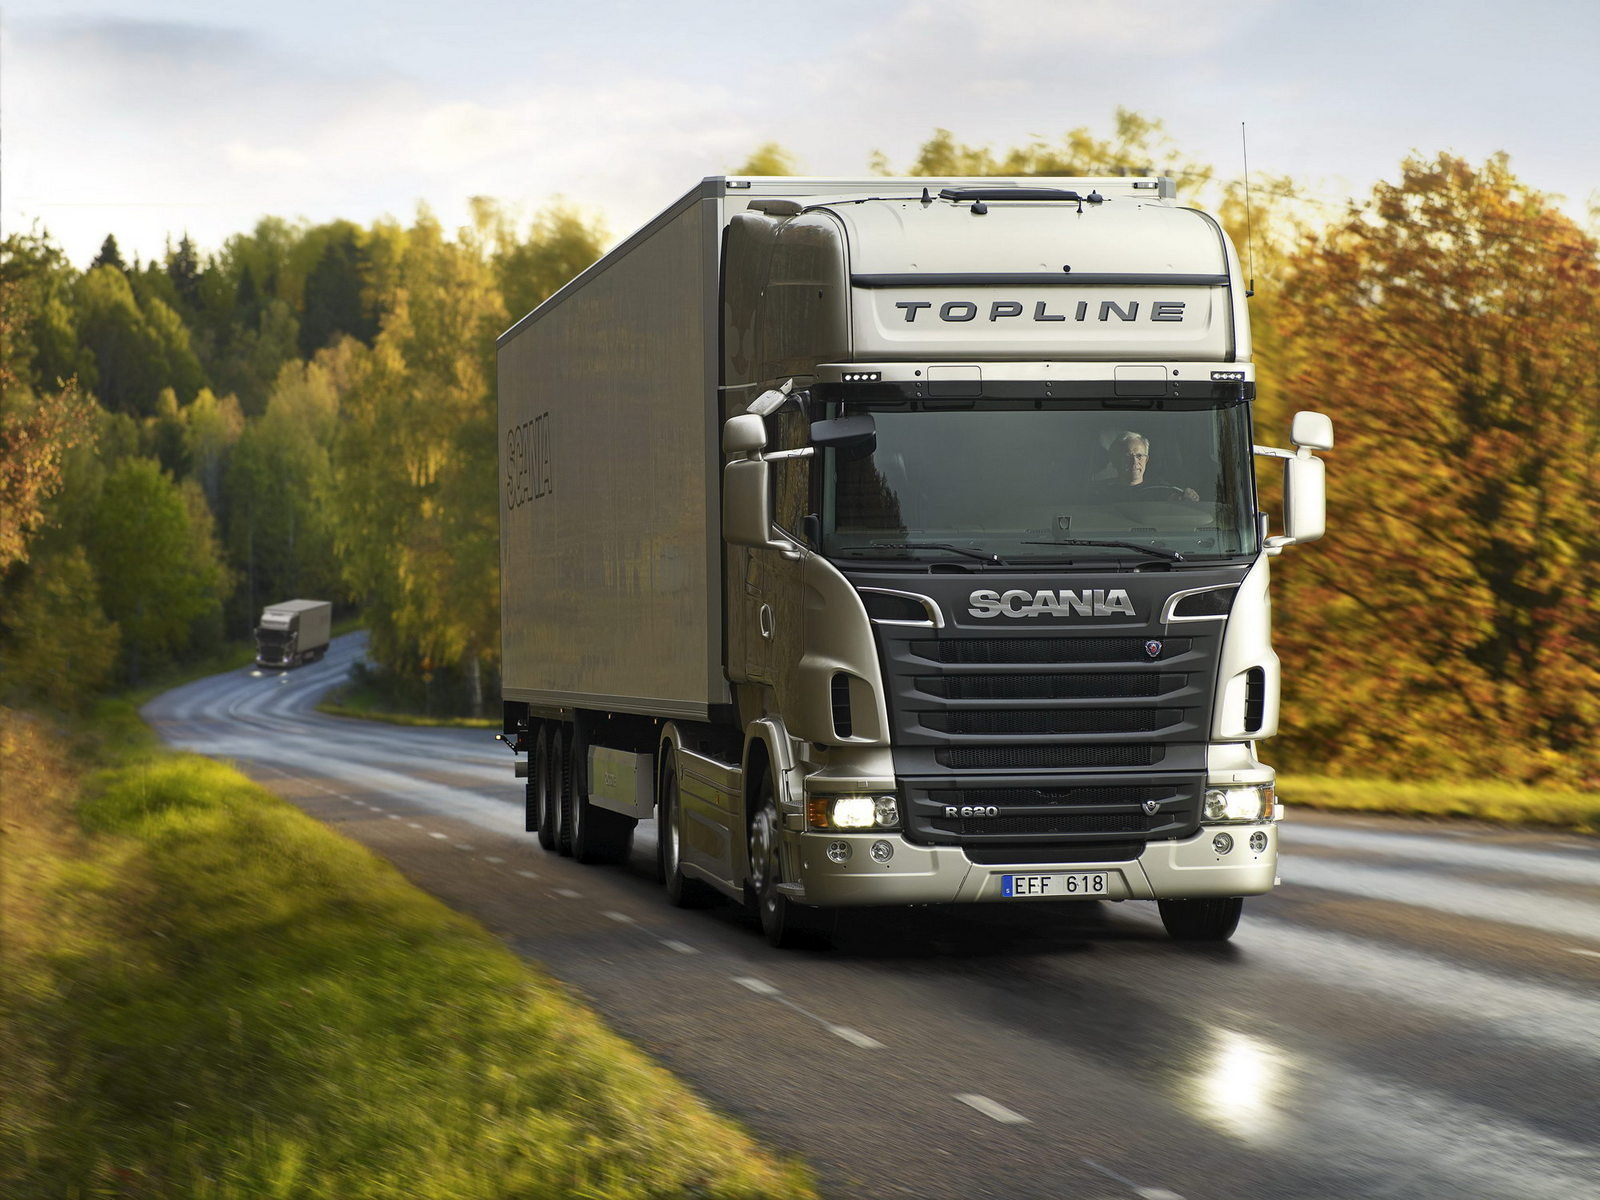 images of 4 020 tattoo s found view more scania v8 wallpaper wallpaper